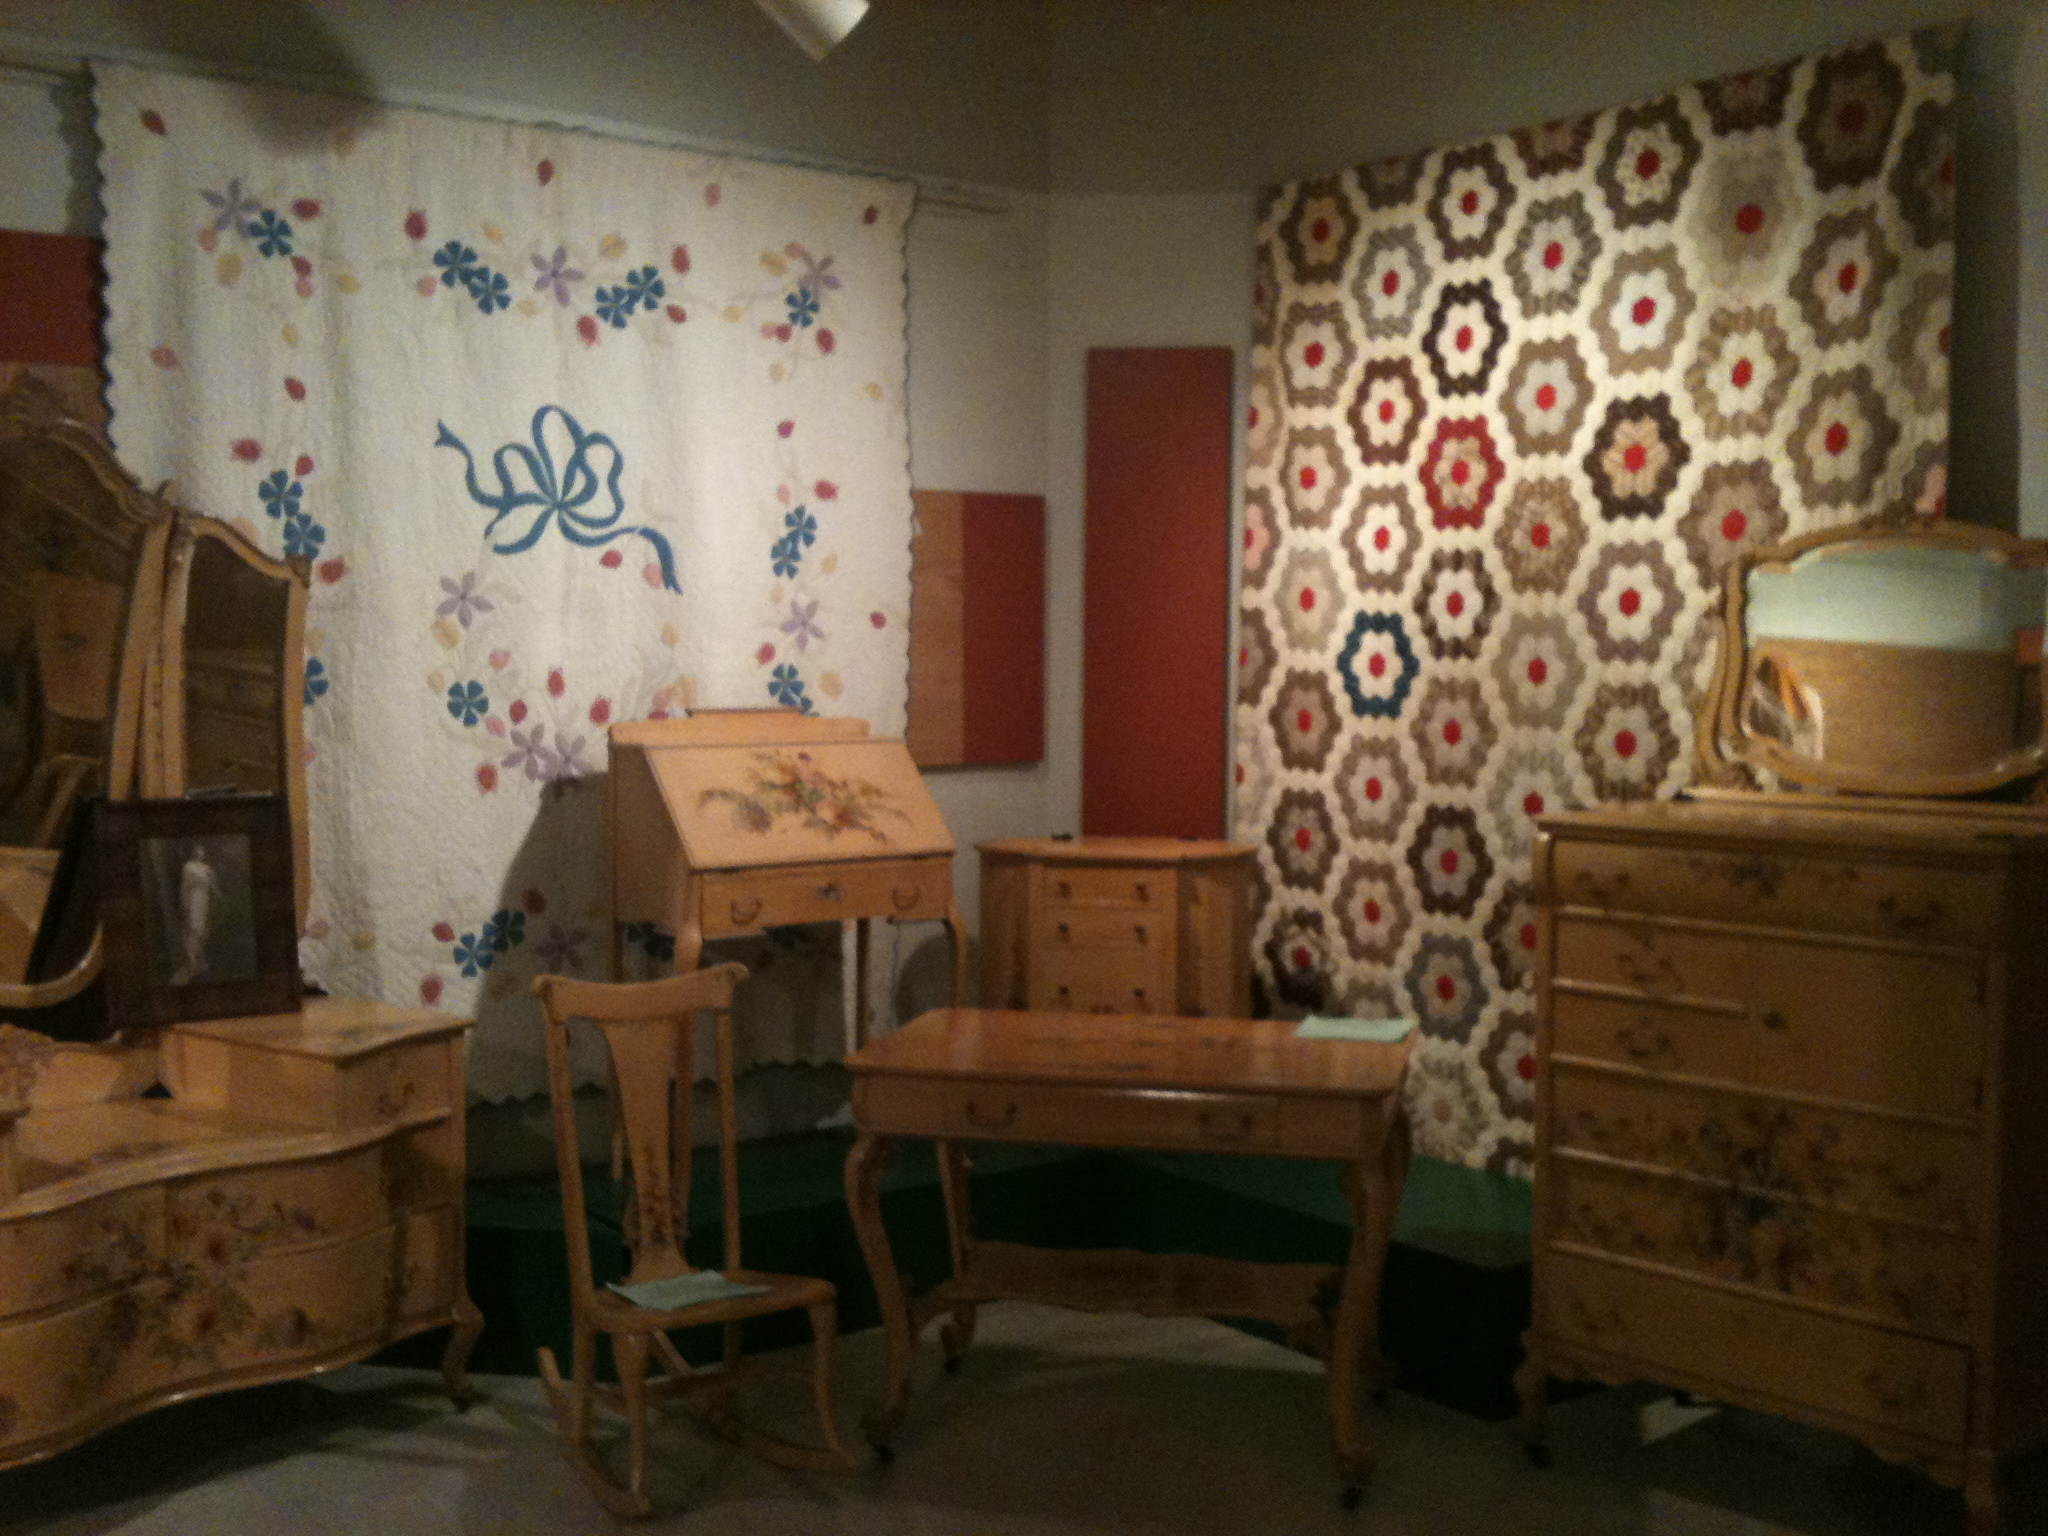 The 2009 exhibit featured Powers Quits and hand painted furniture by Ida Chubb